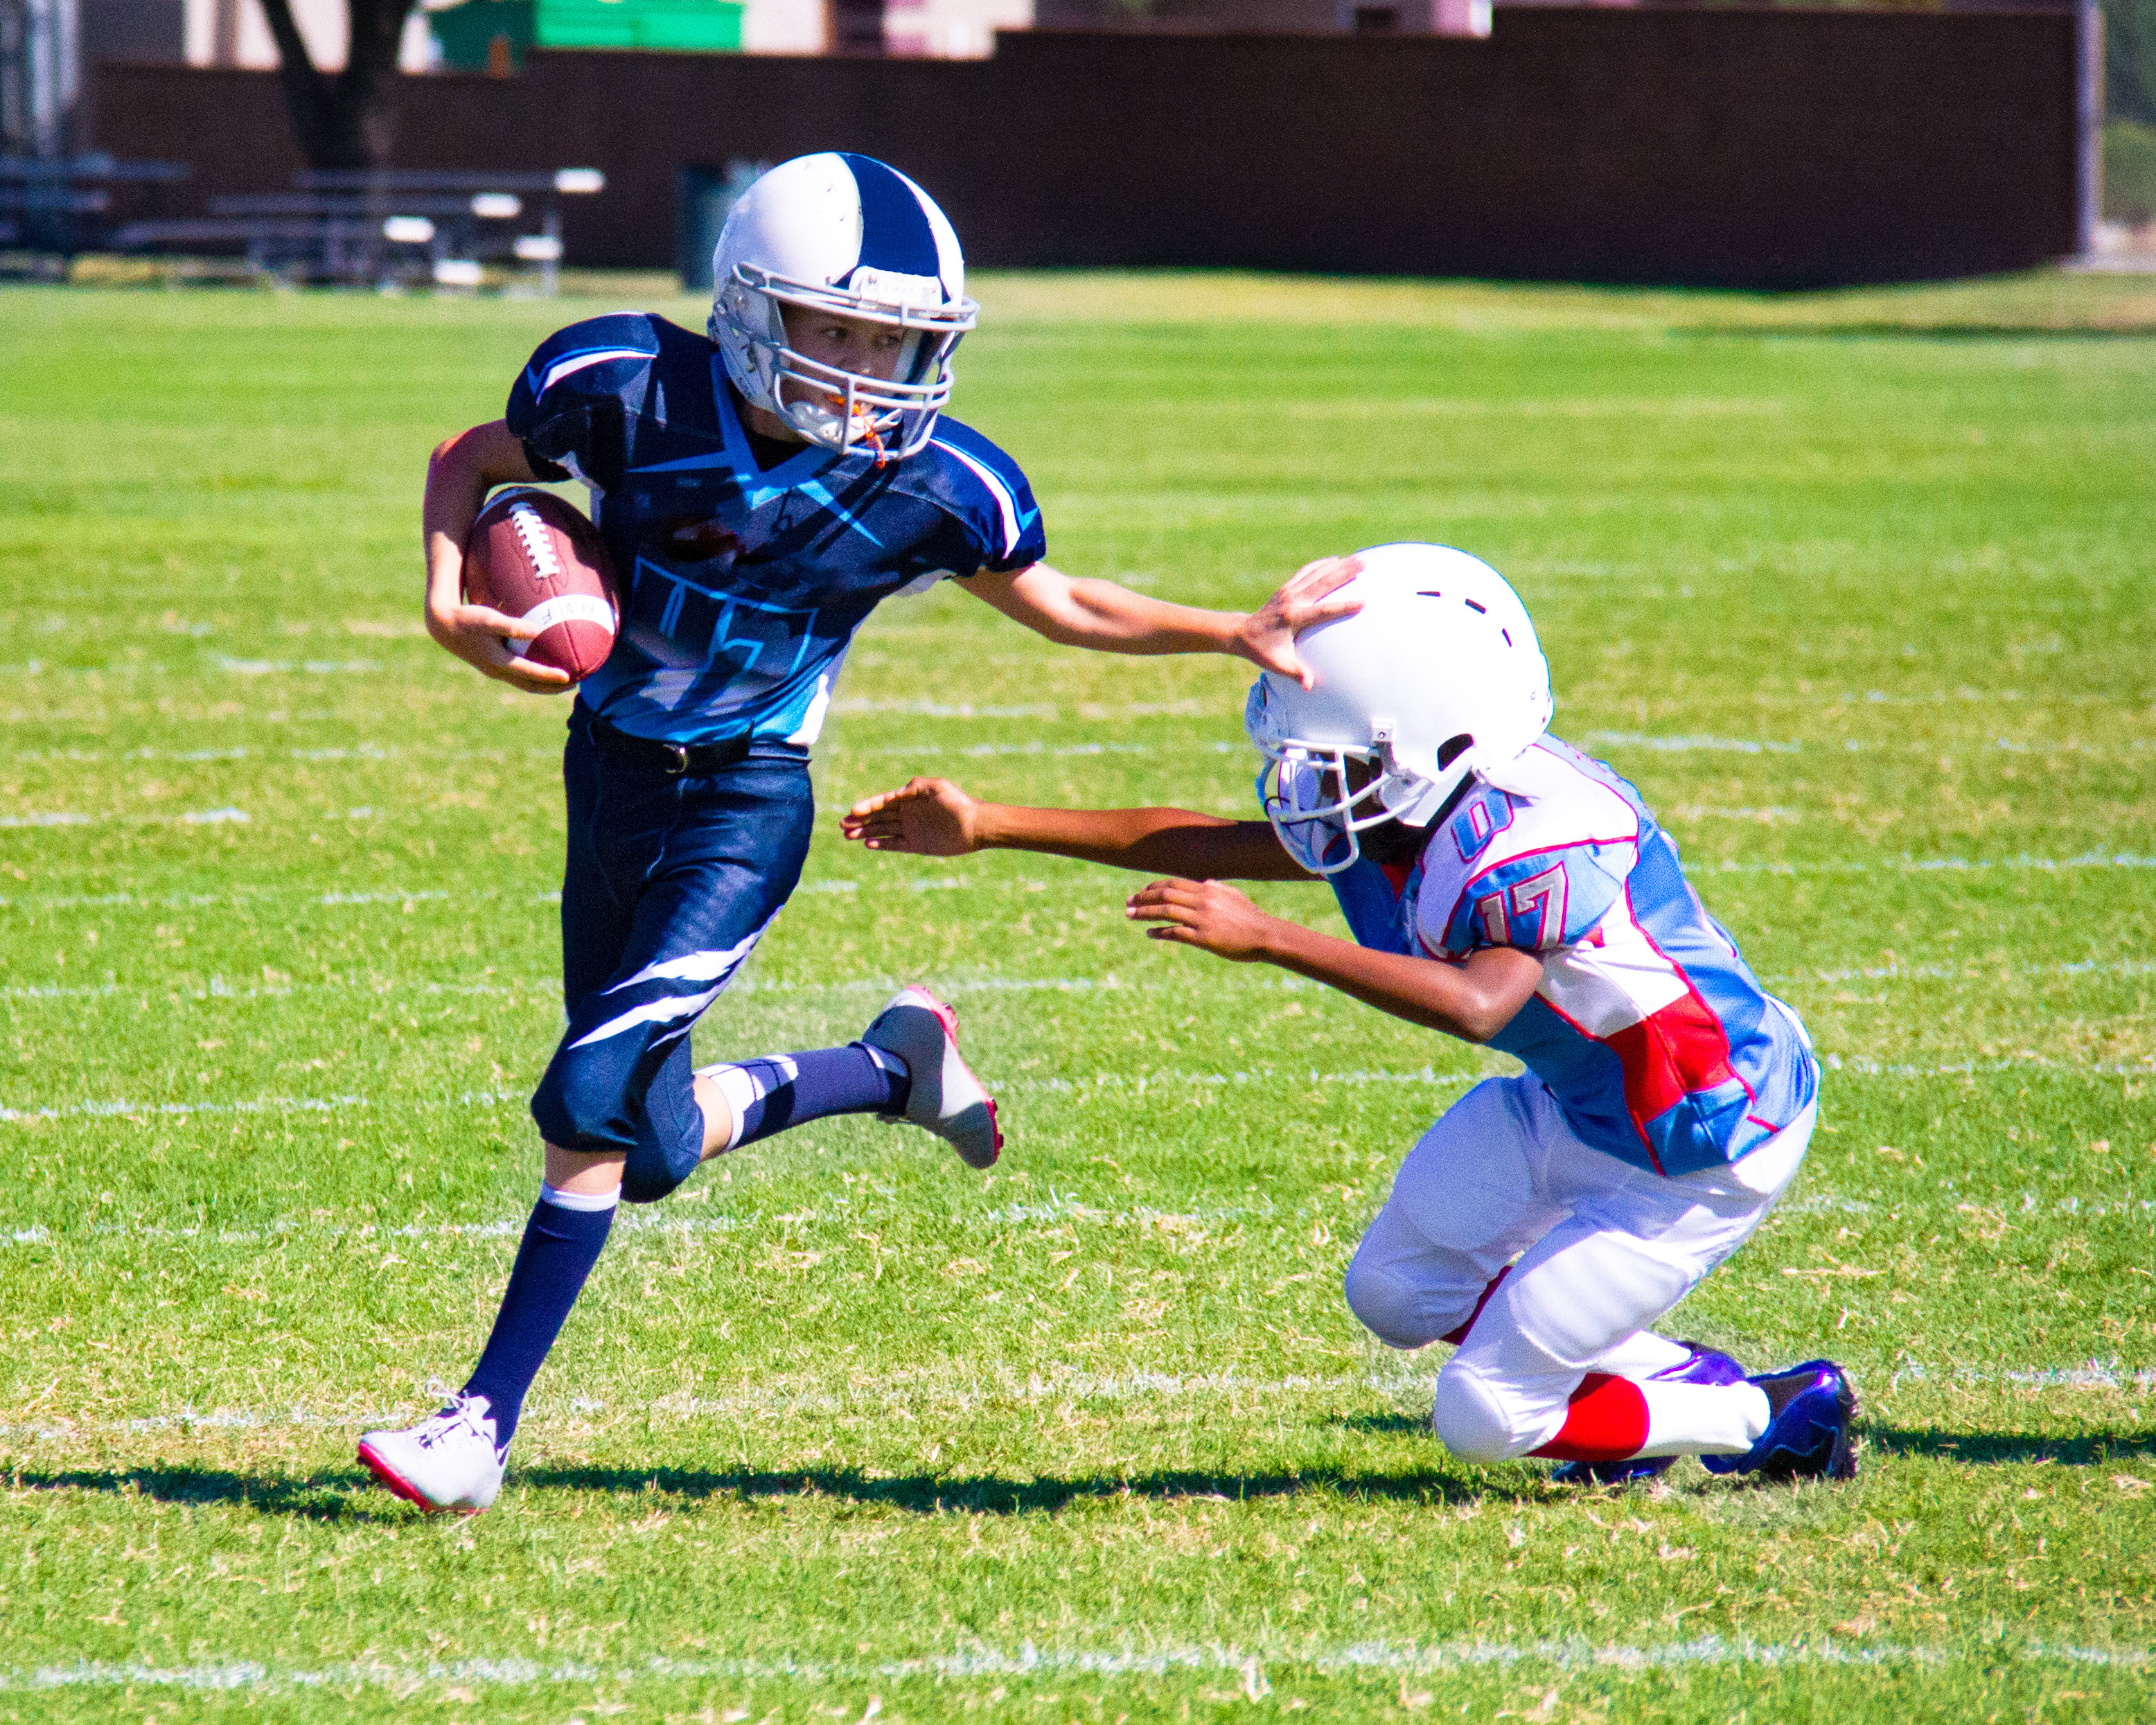 strength and conditioning drills can help youth football players excel